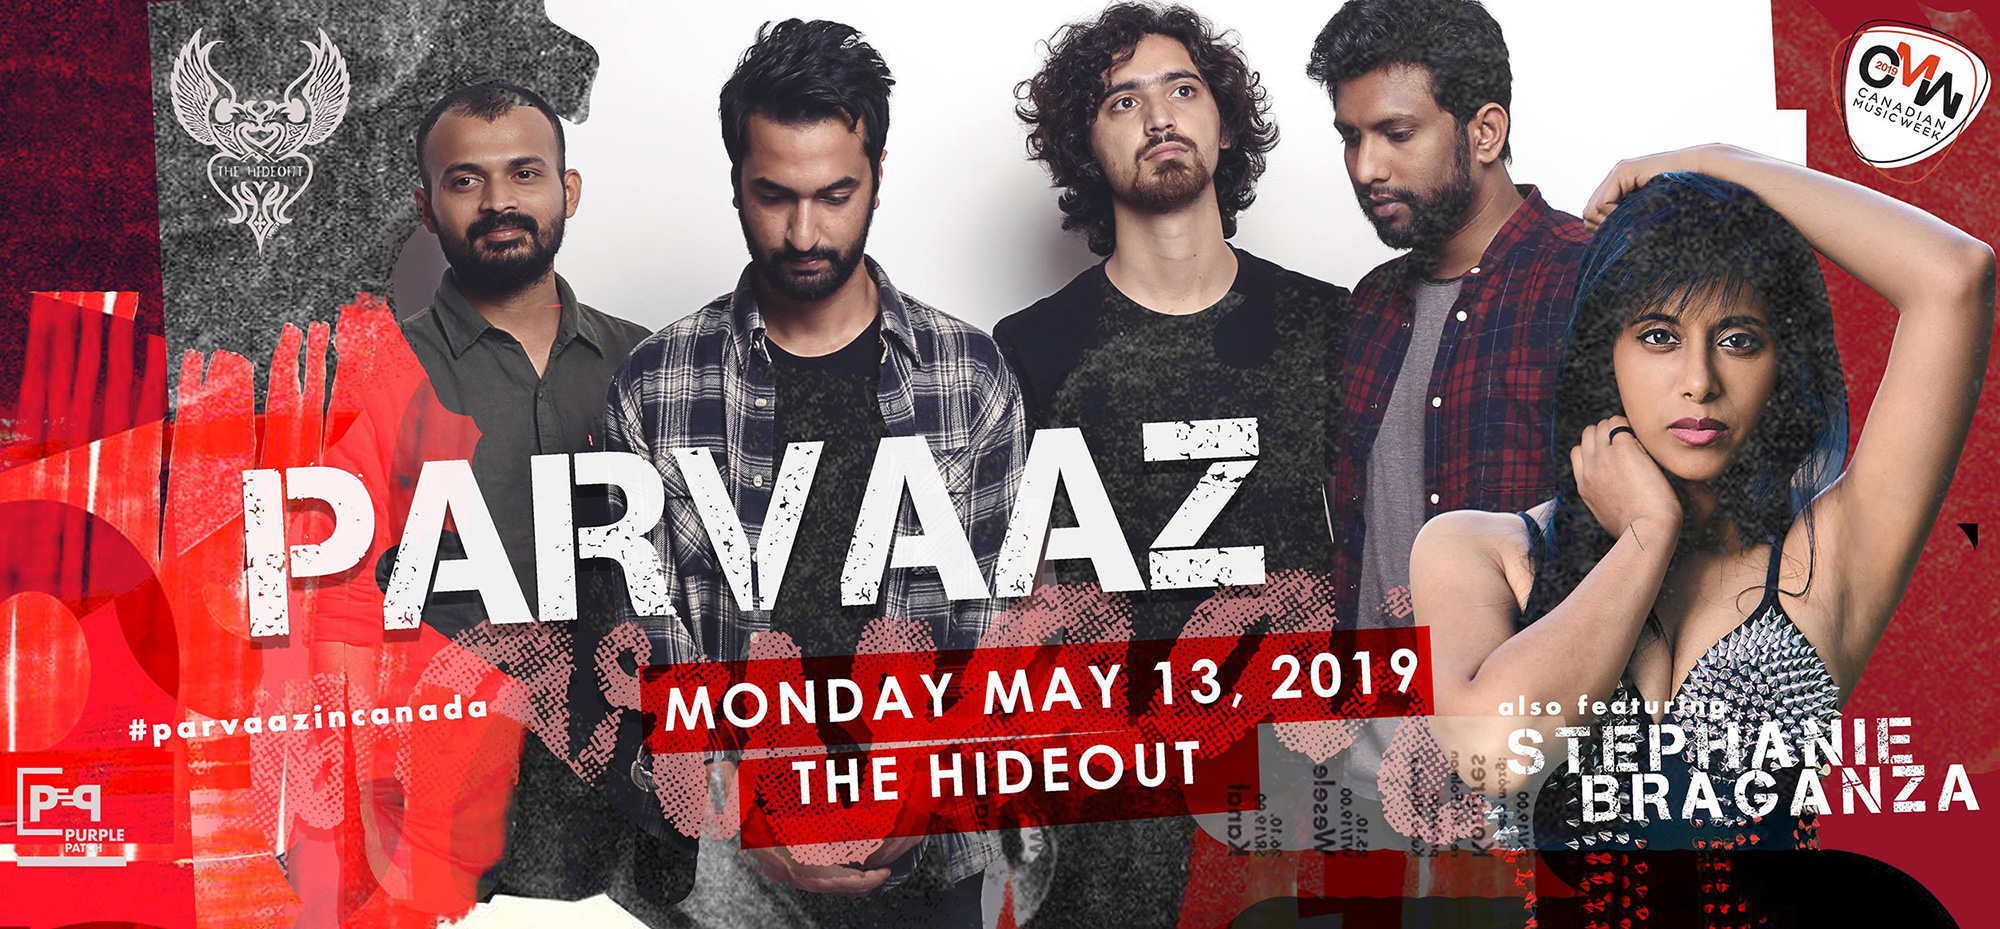 """Join us for a double bill featuring Stephanie Braganza and Parvaaz's at The Hideout, Toronto.  Parvaaz, """"India's most exciting band right now..."""" according to RollingStone magazine, will be featured at this event."""